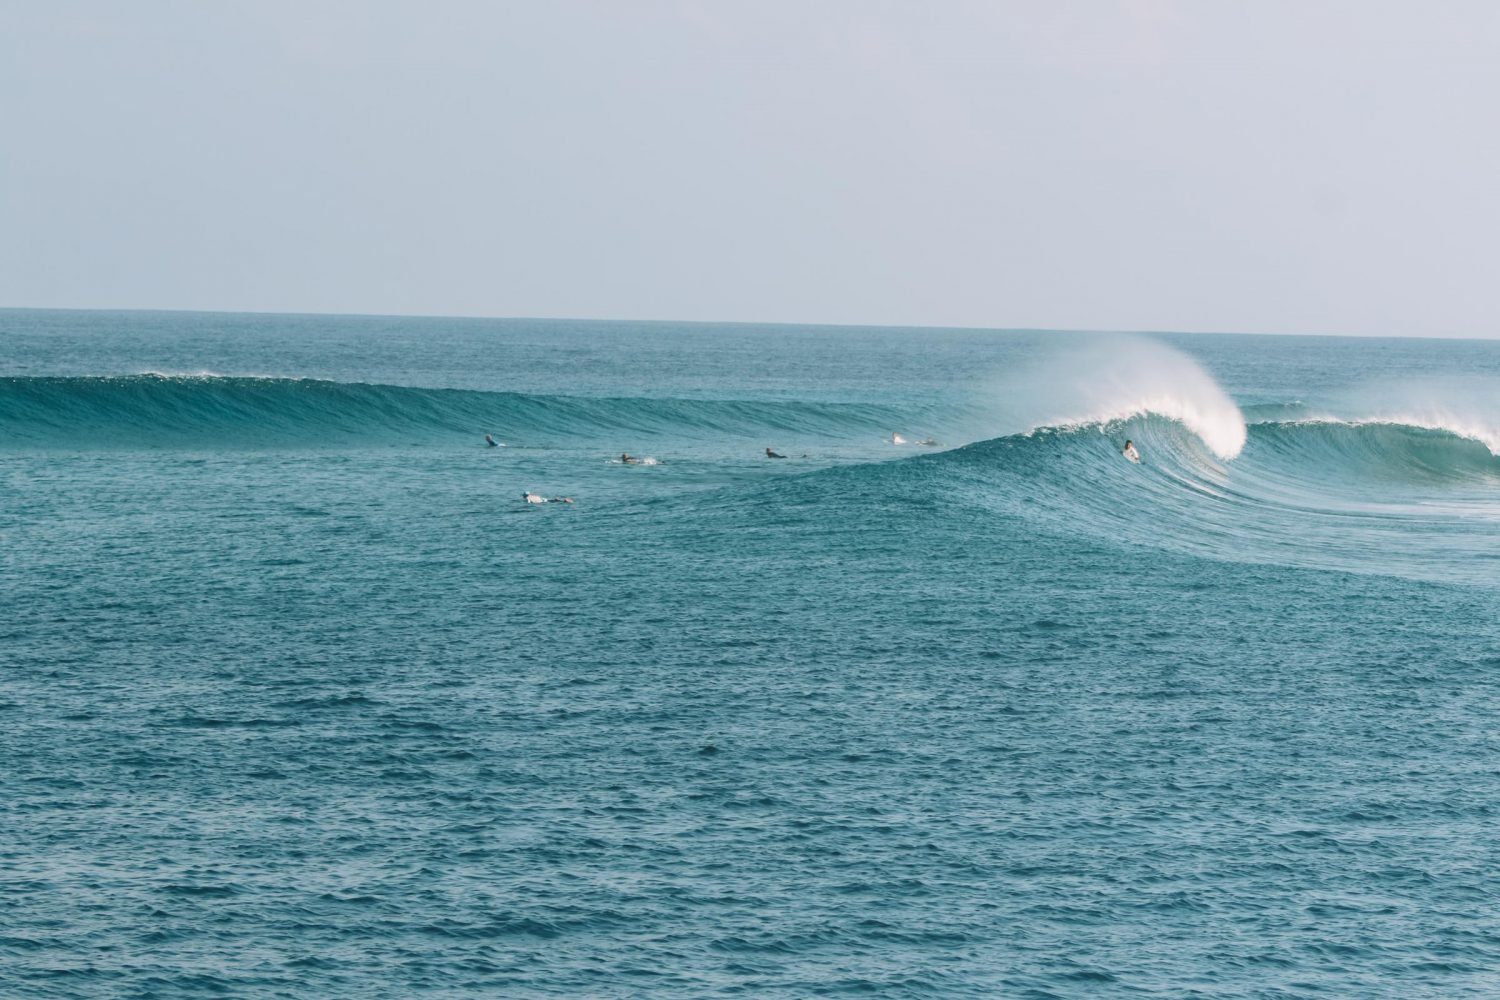 Southern Atolls Surfing